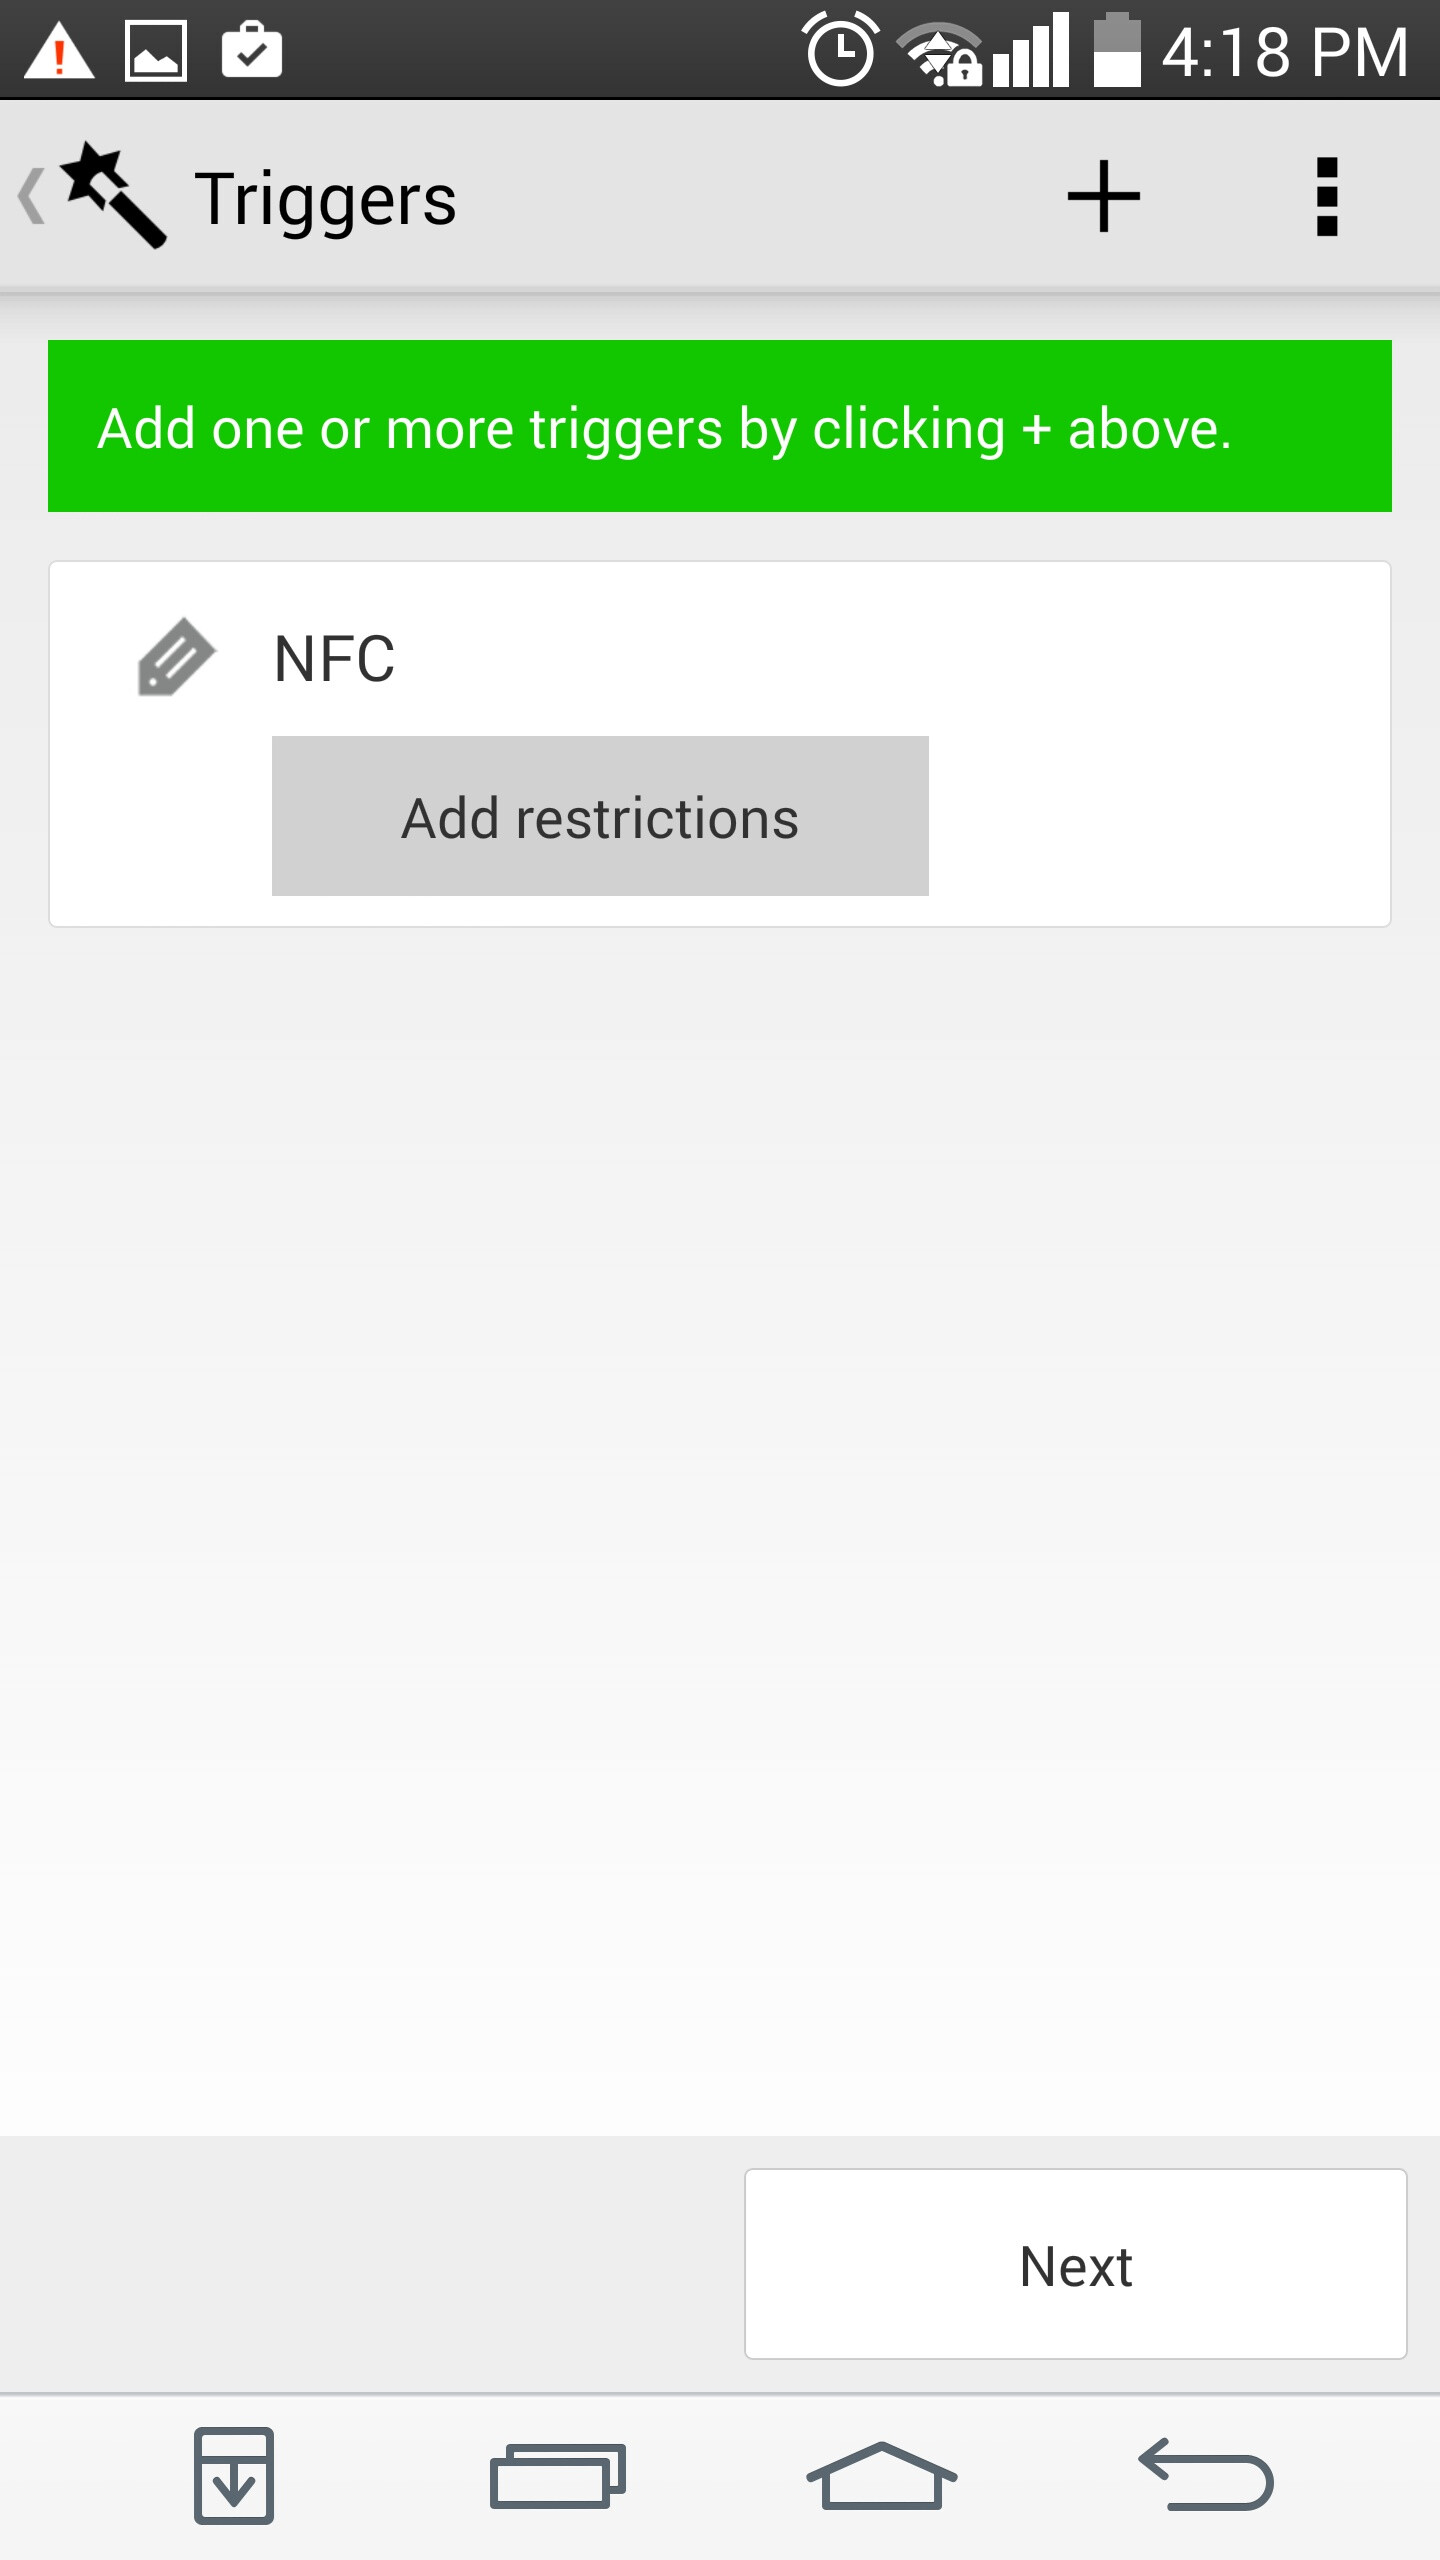 How to use an Android device and NFC tag to turn on a